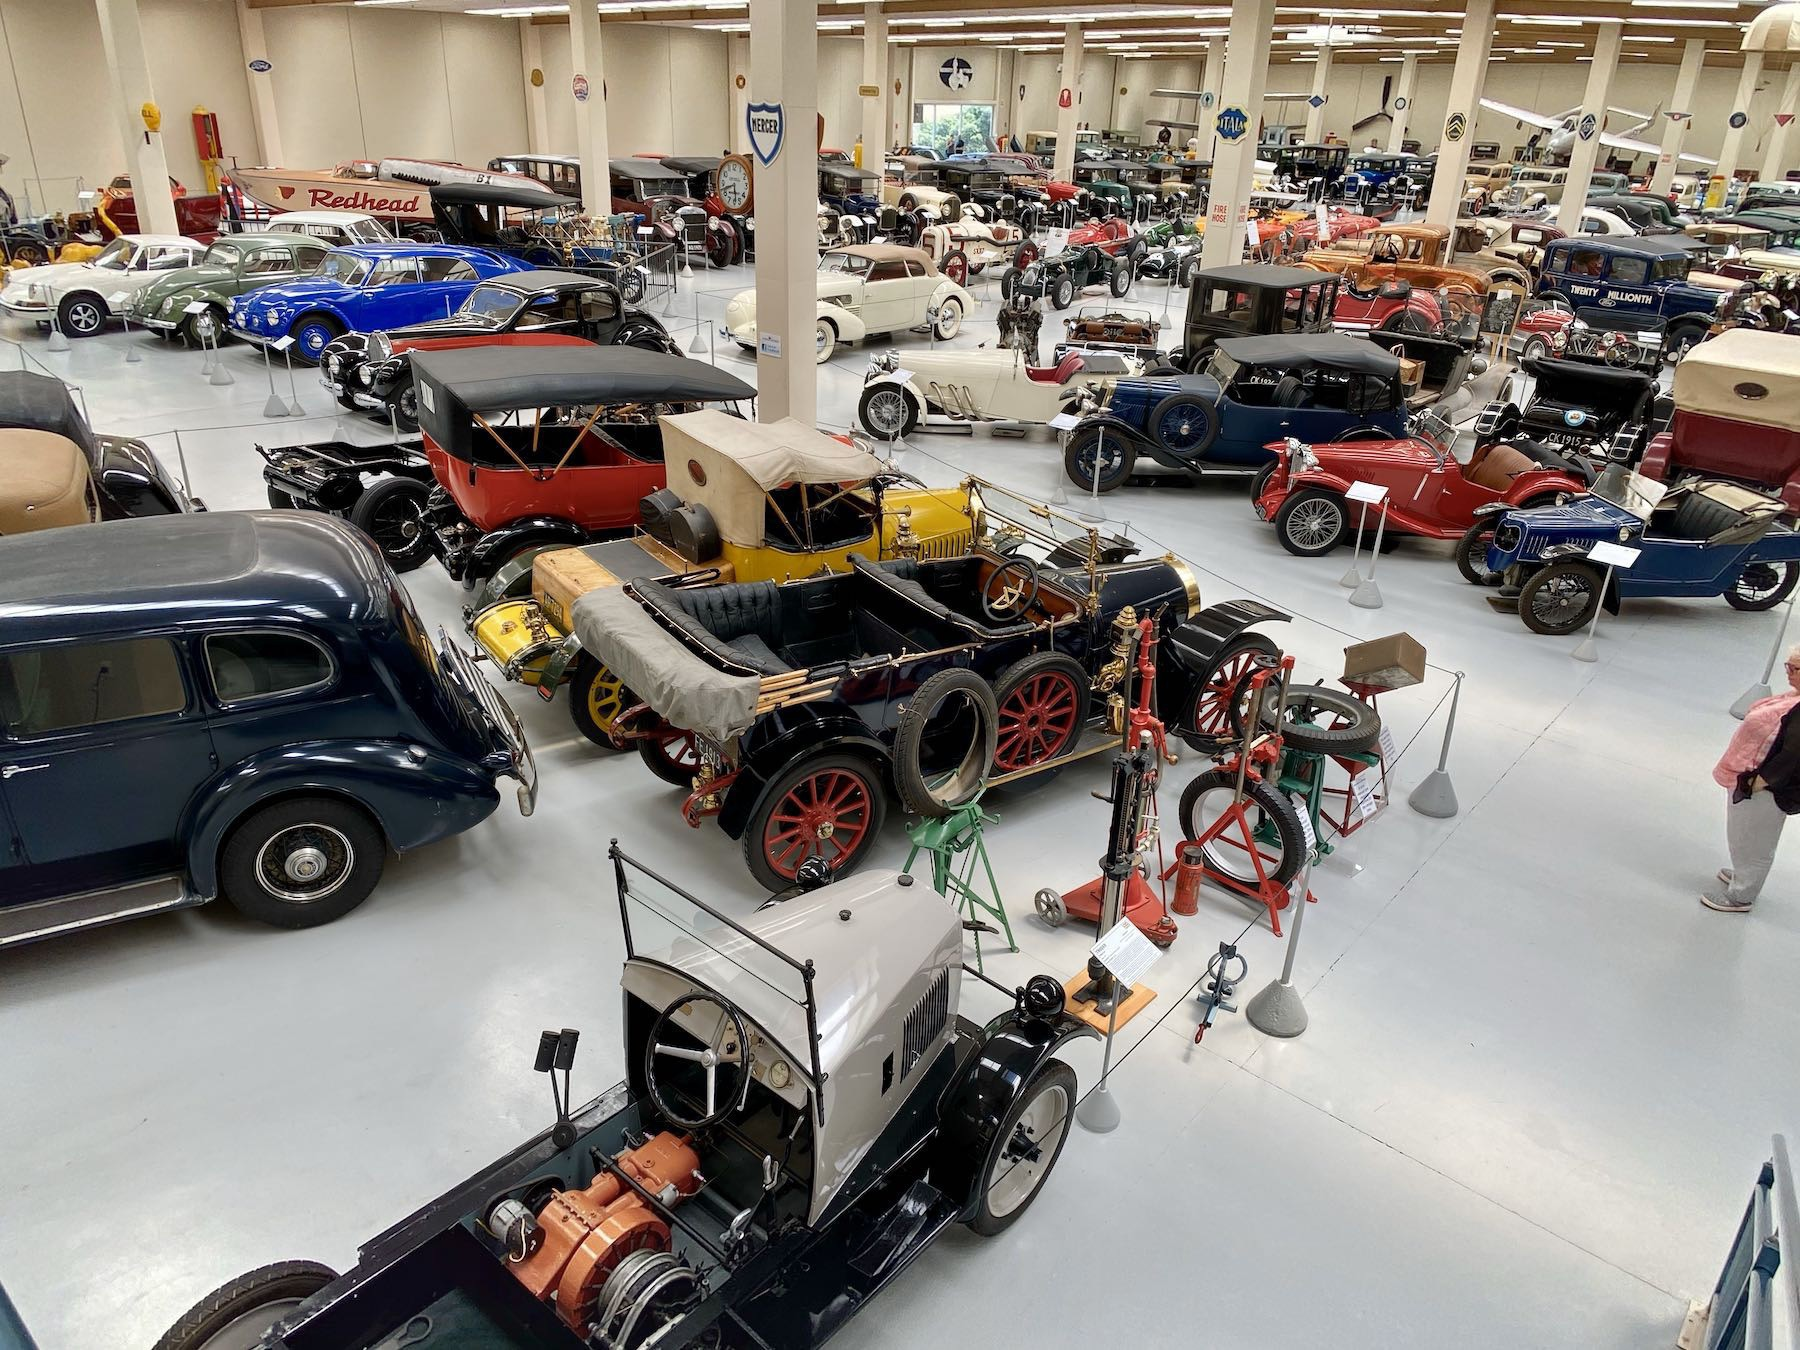 Miscellaneous cars.